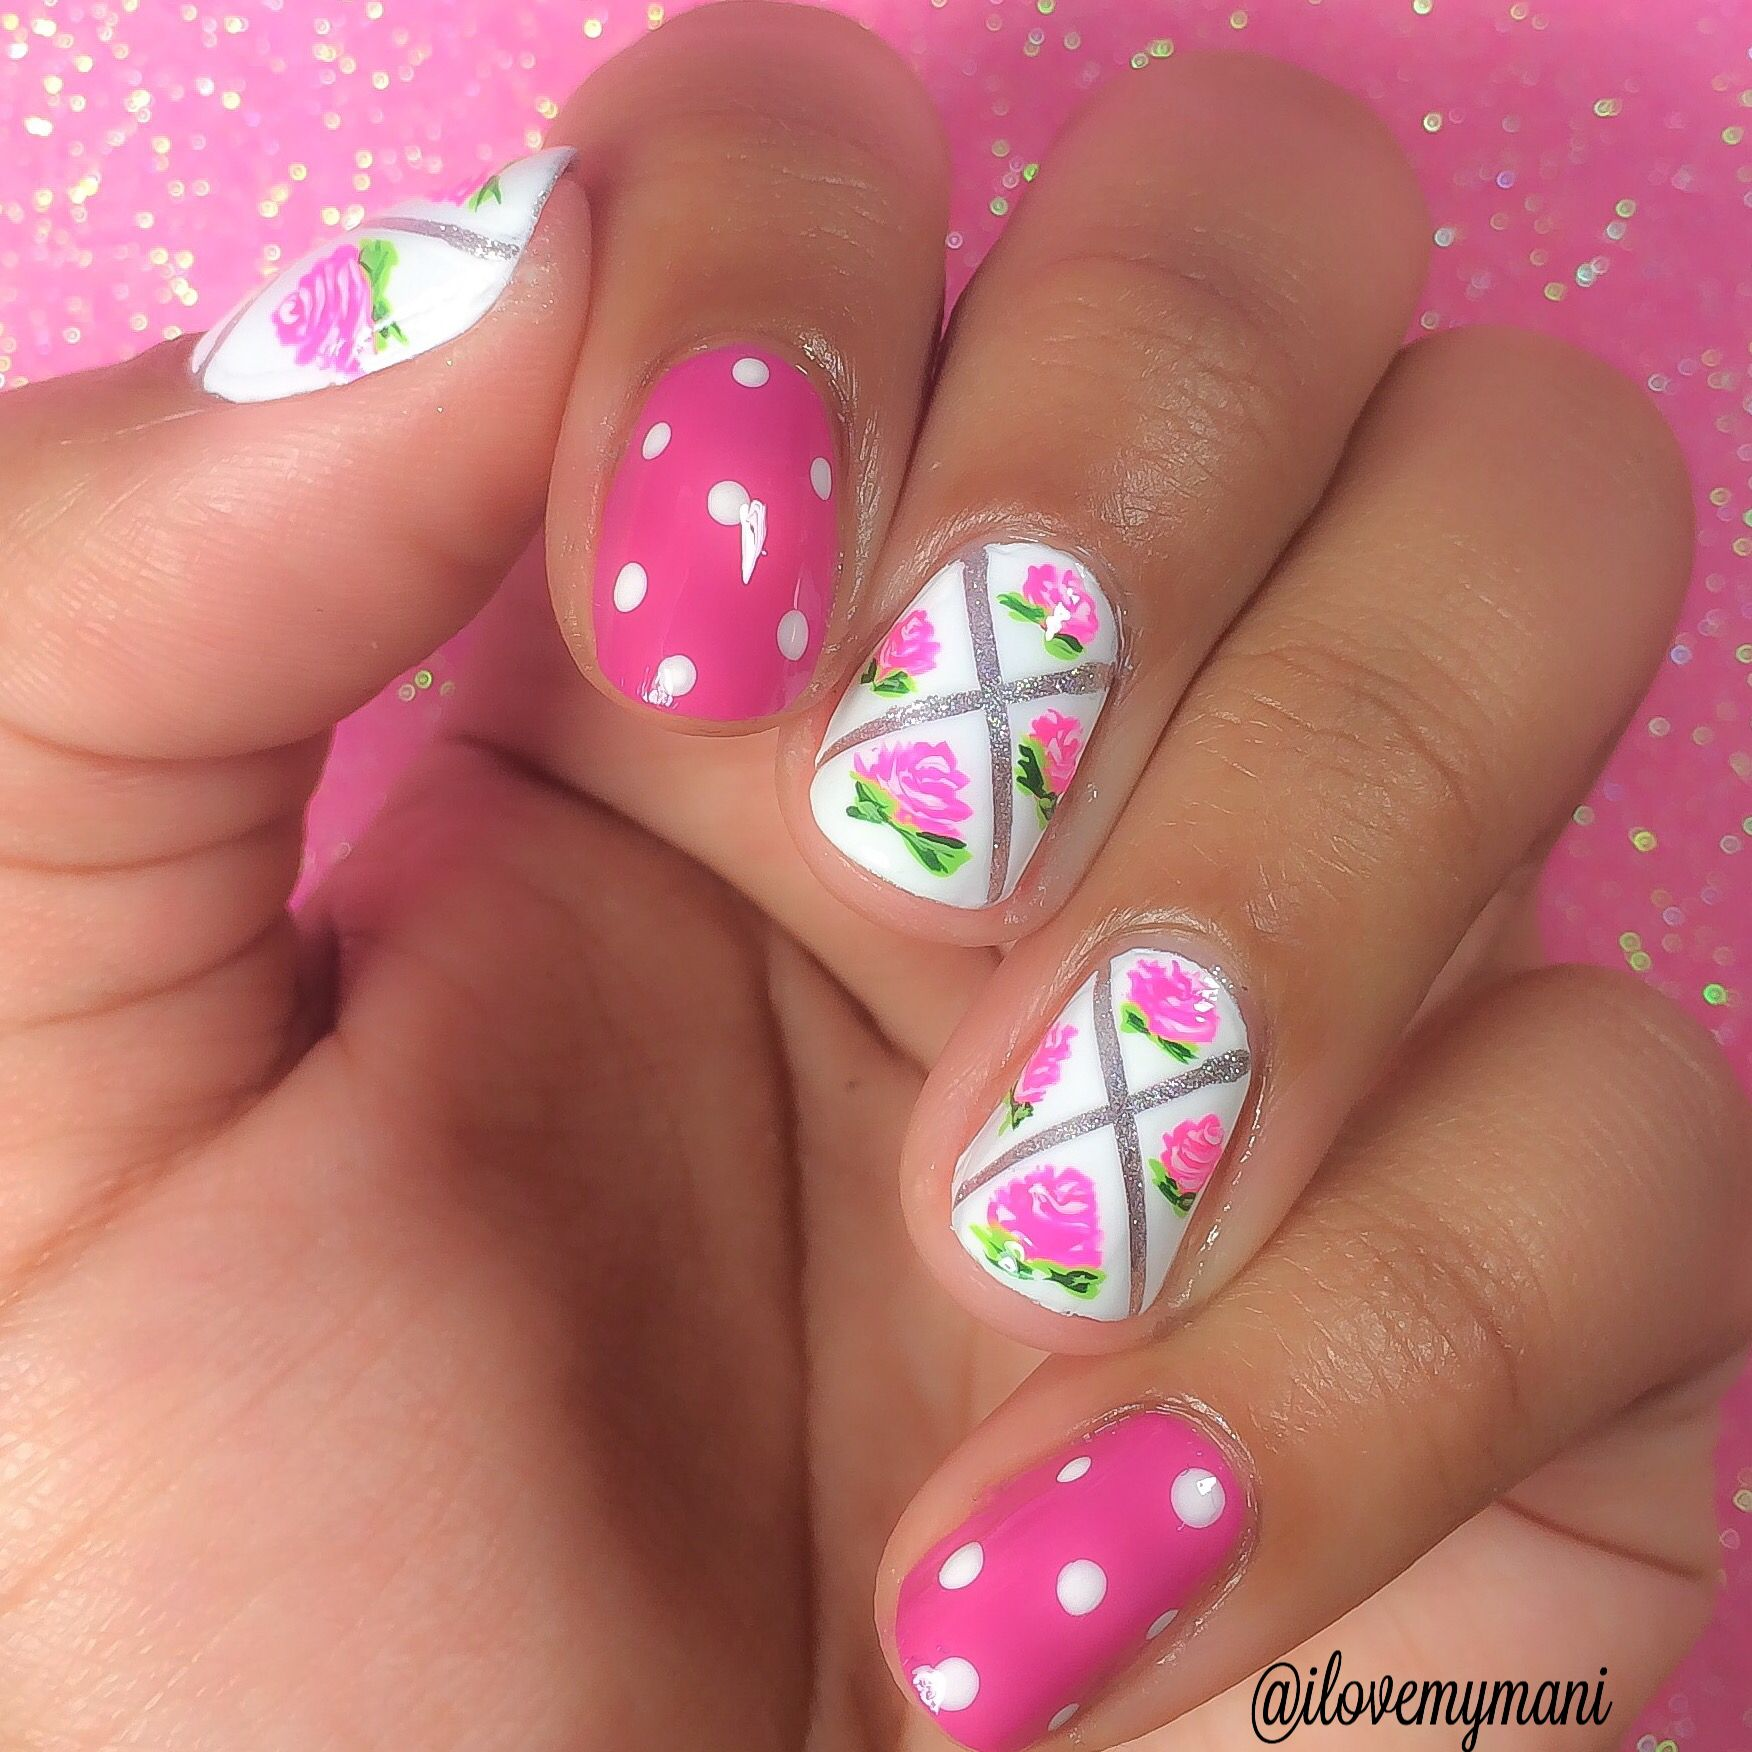 Girly Nail Art: Girly Floral Nail Art Using